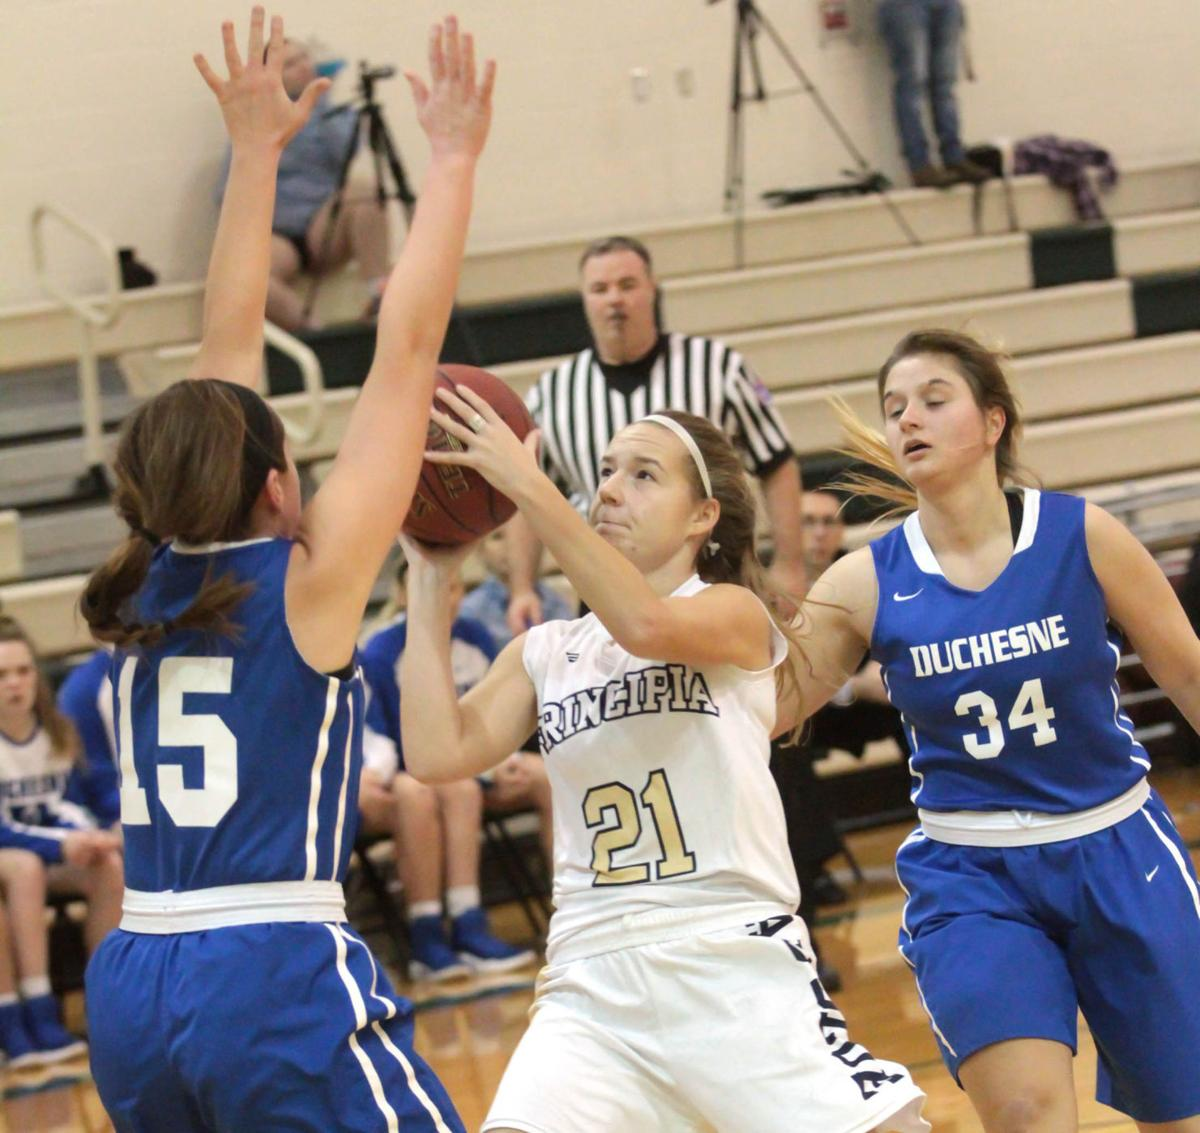 duchesne girls The duchesne eagles have believed since the beginning they were good enough to play in the 1a girls basketball state championship game.